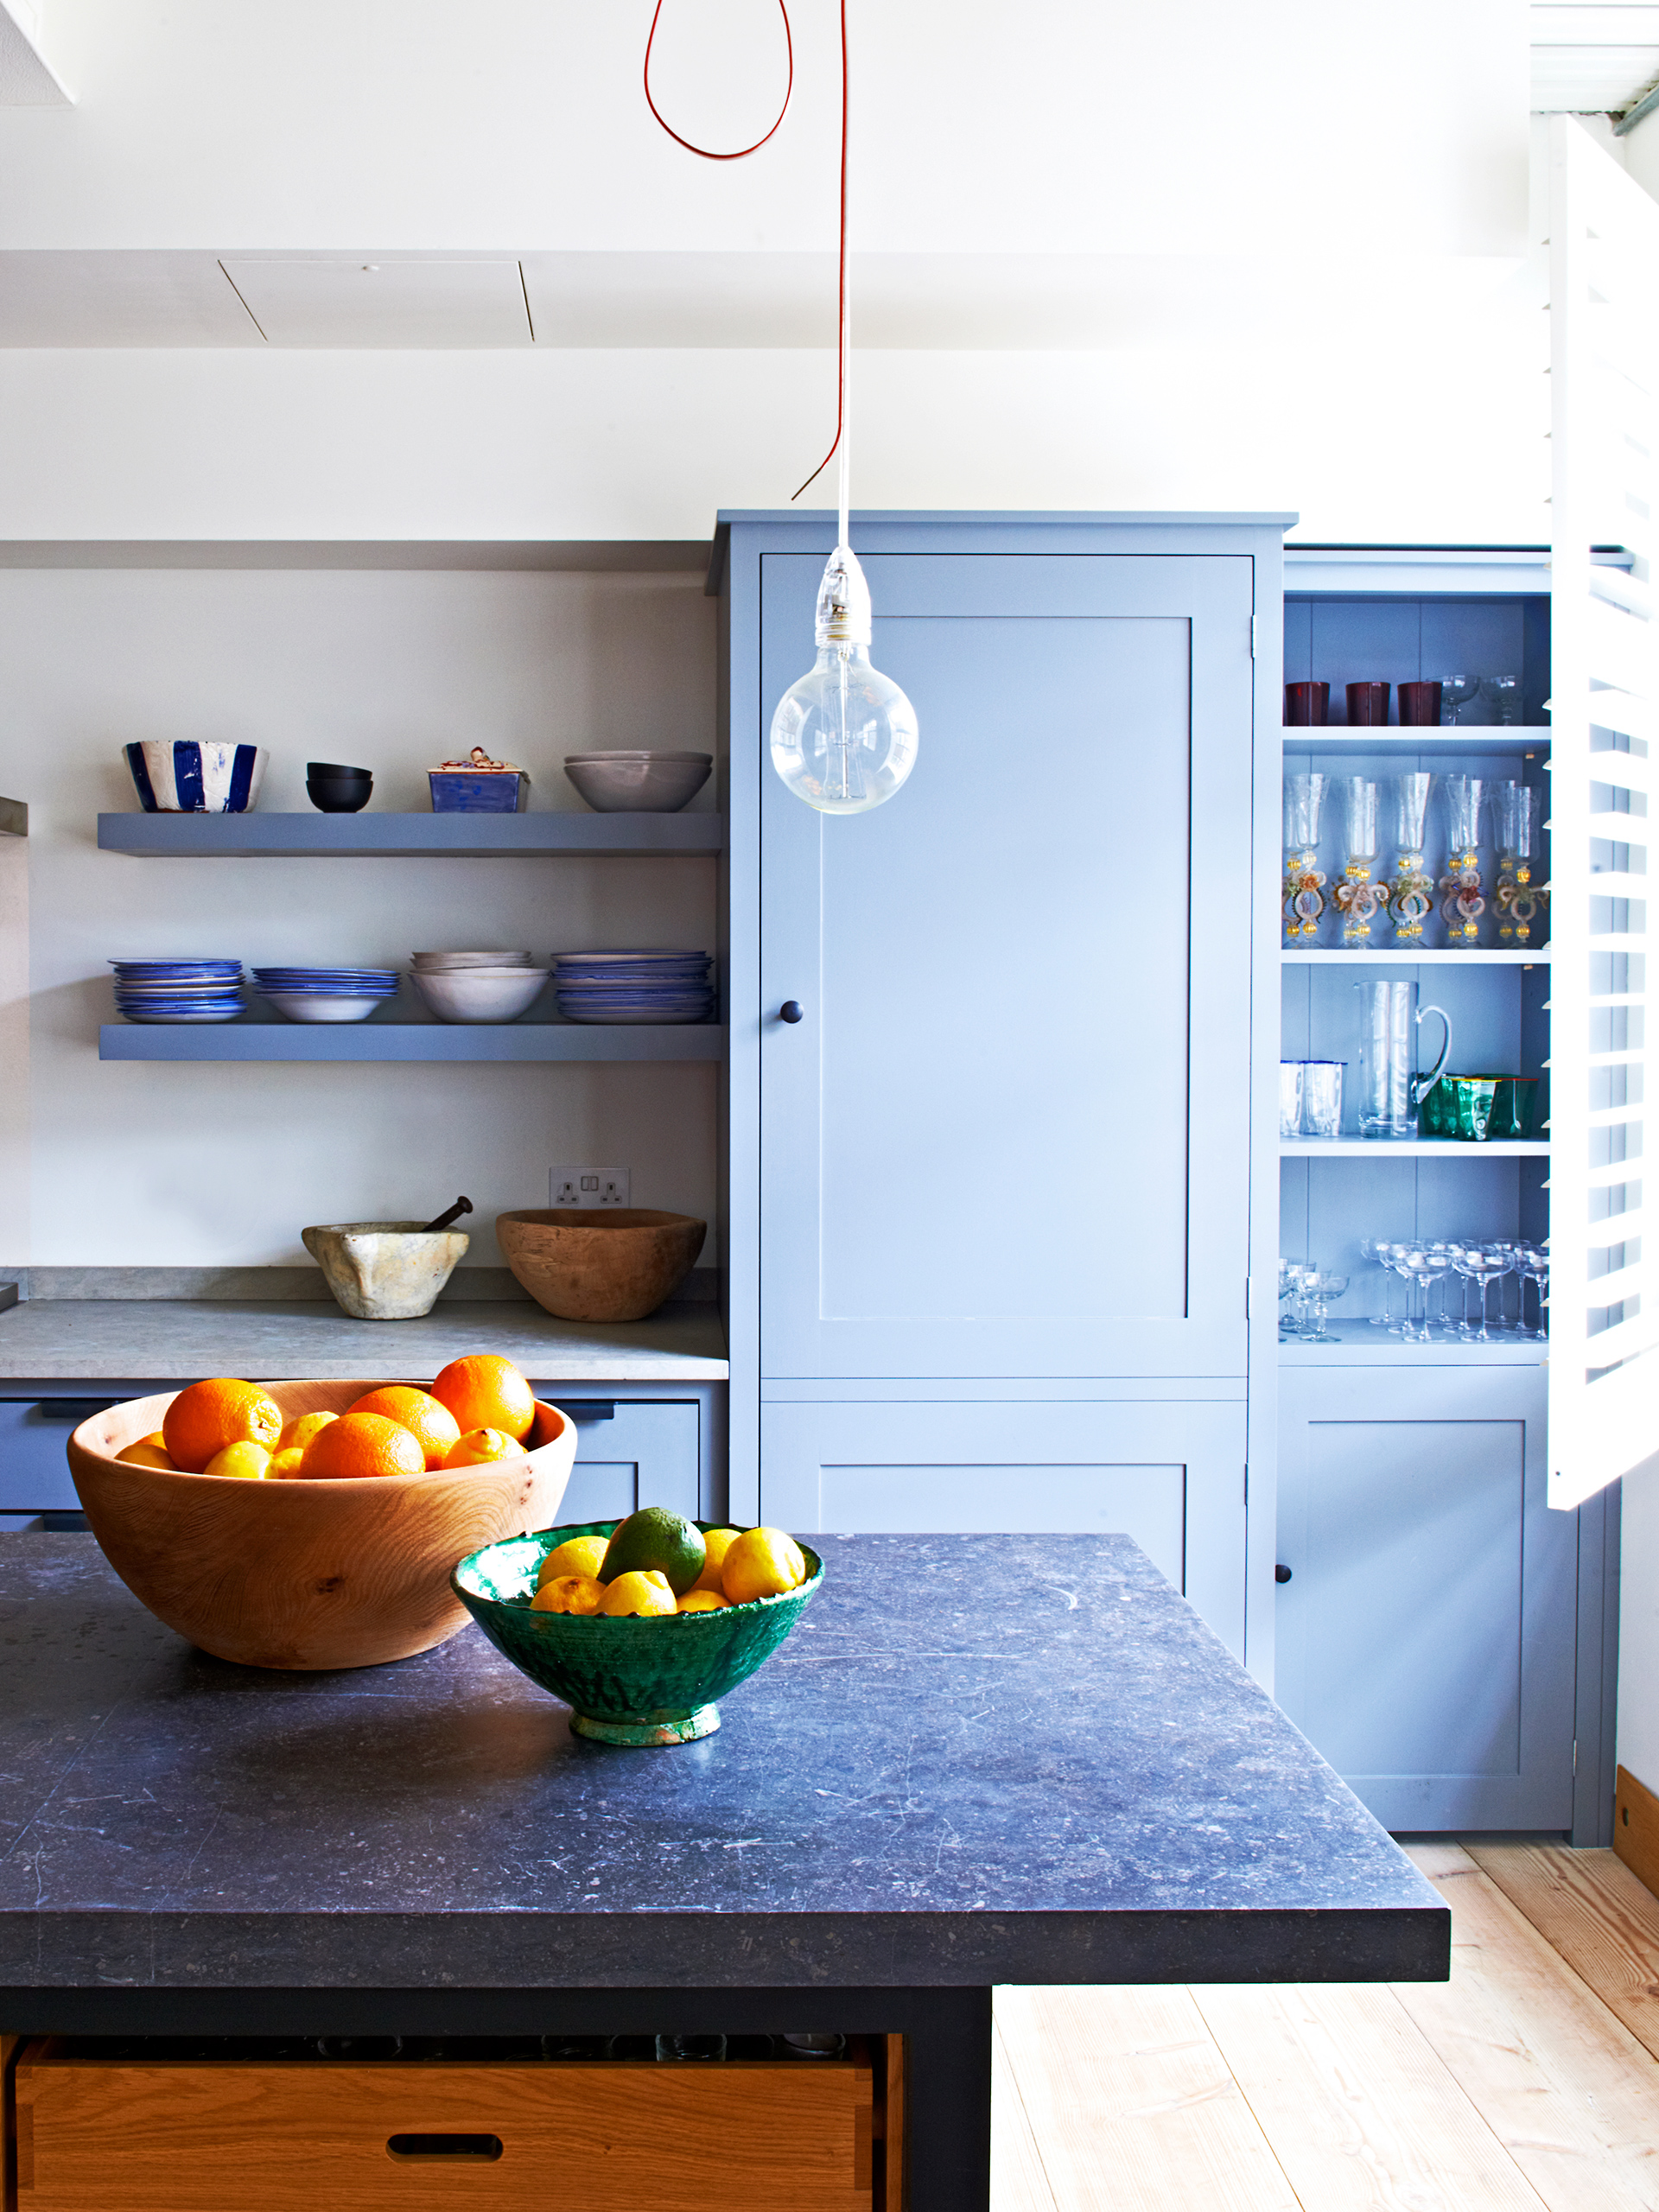 Inset Cabinets essentially mean cabinets whose doors sit within the frame of the cabinets.